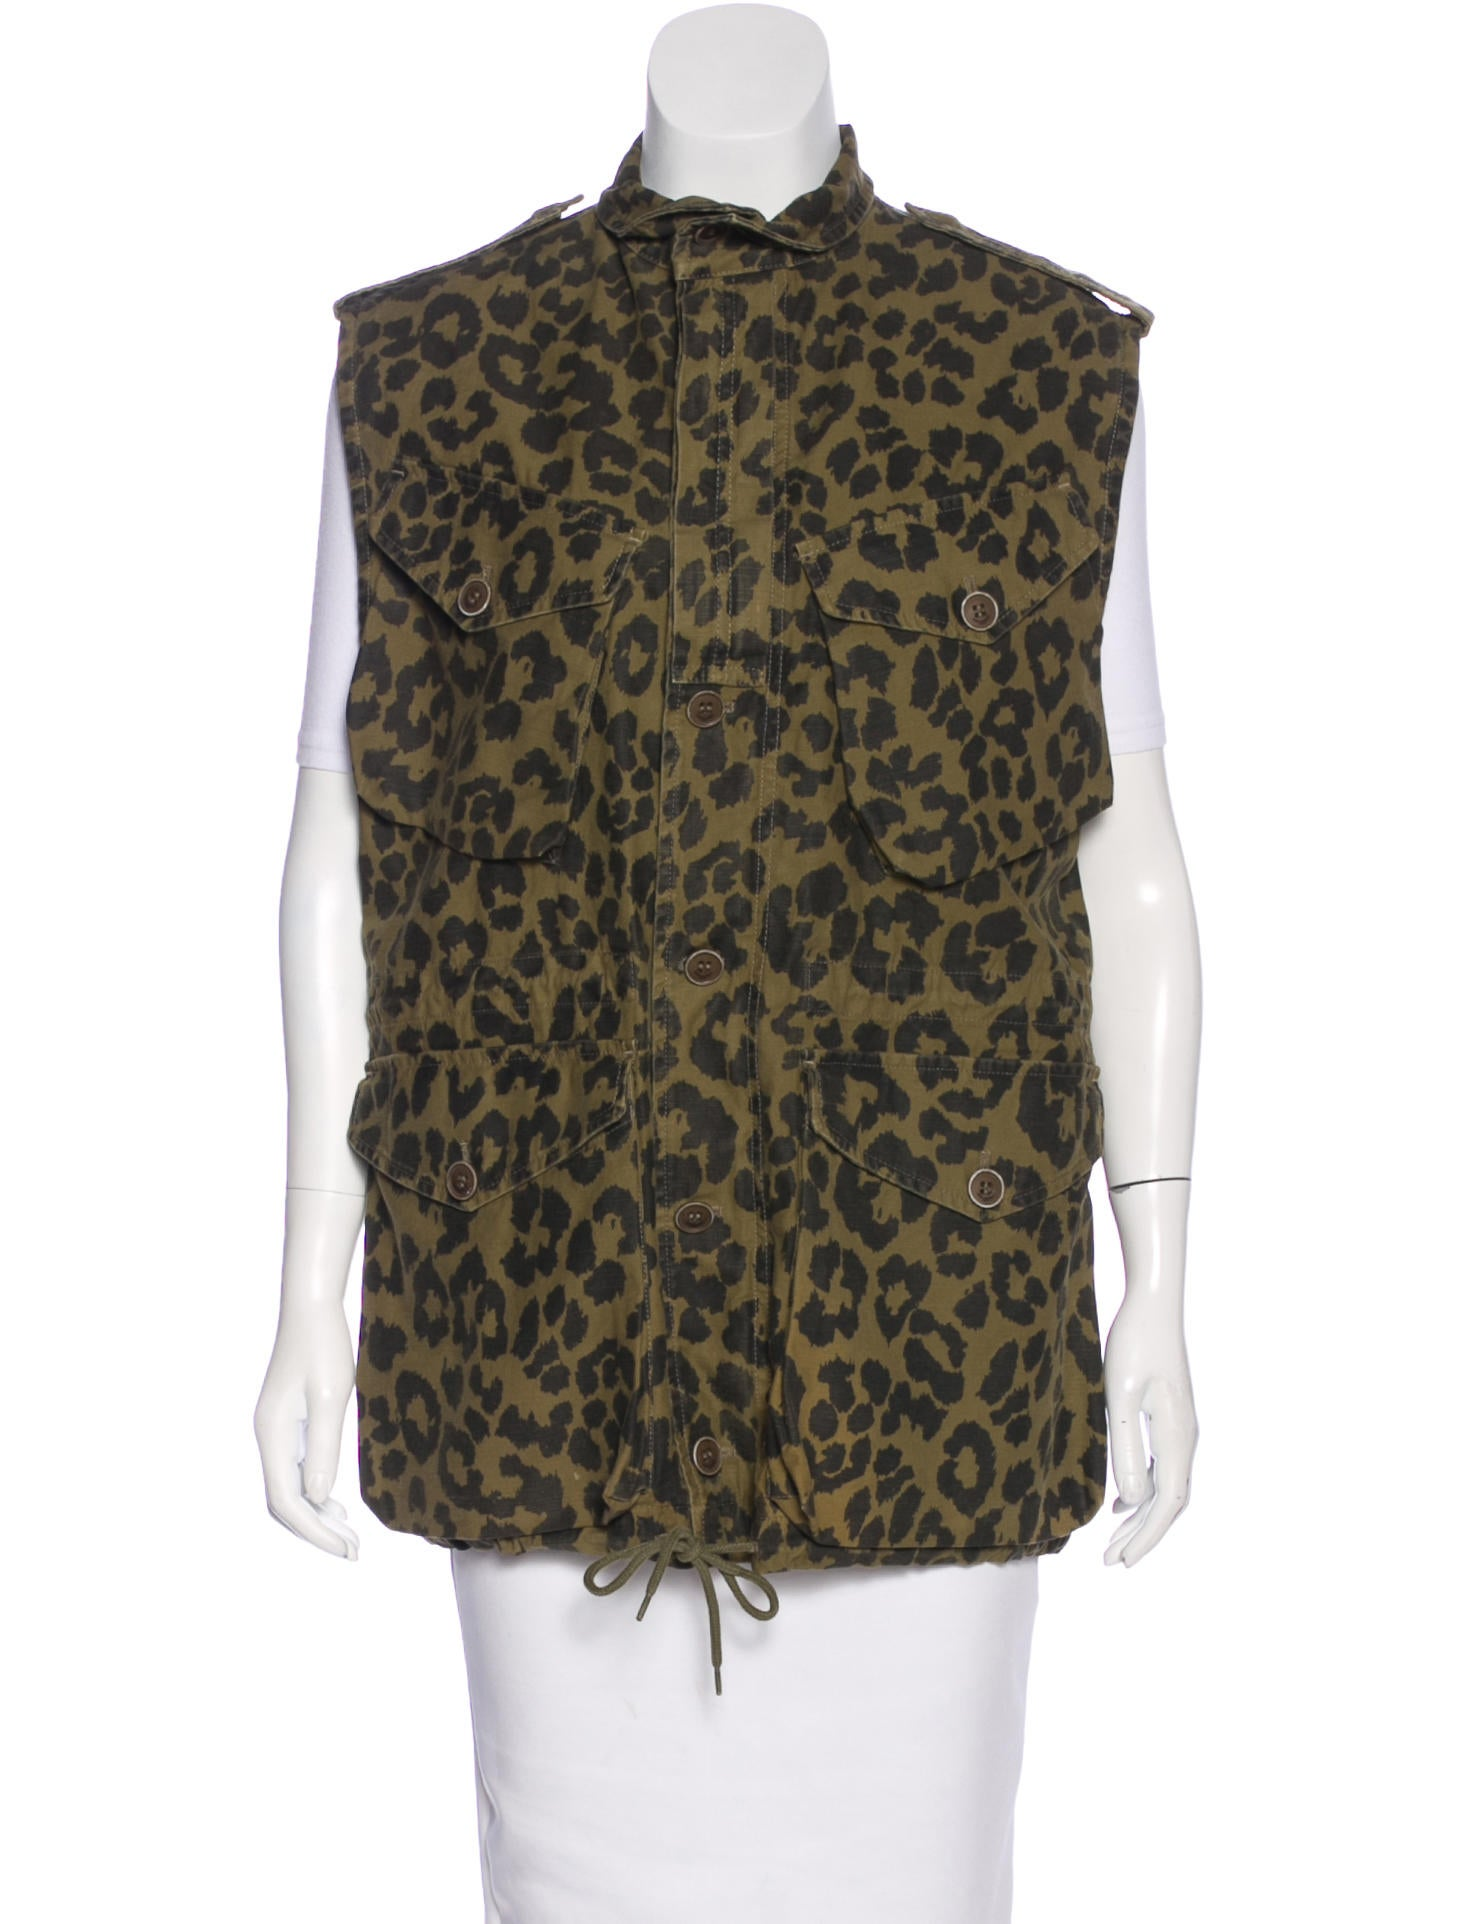 Find leopard print vest at ShopStyle. Shop the latest collection of leopard print vest from the most popular stores - all in one place.